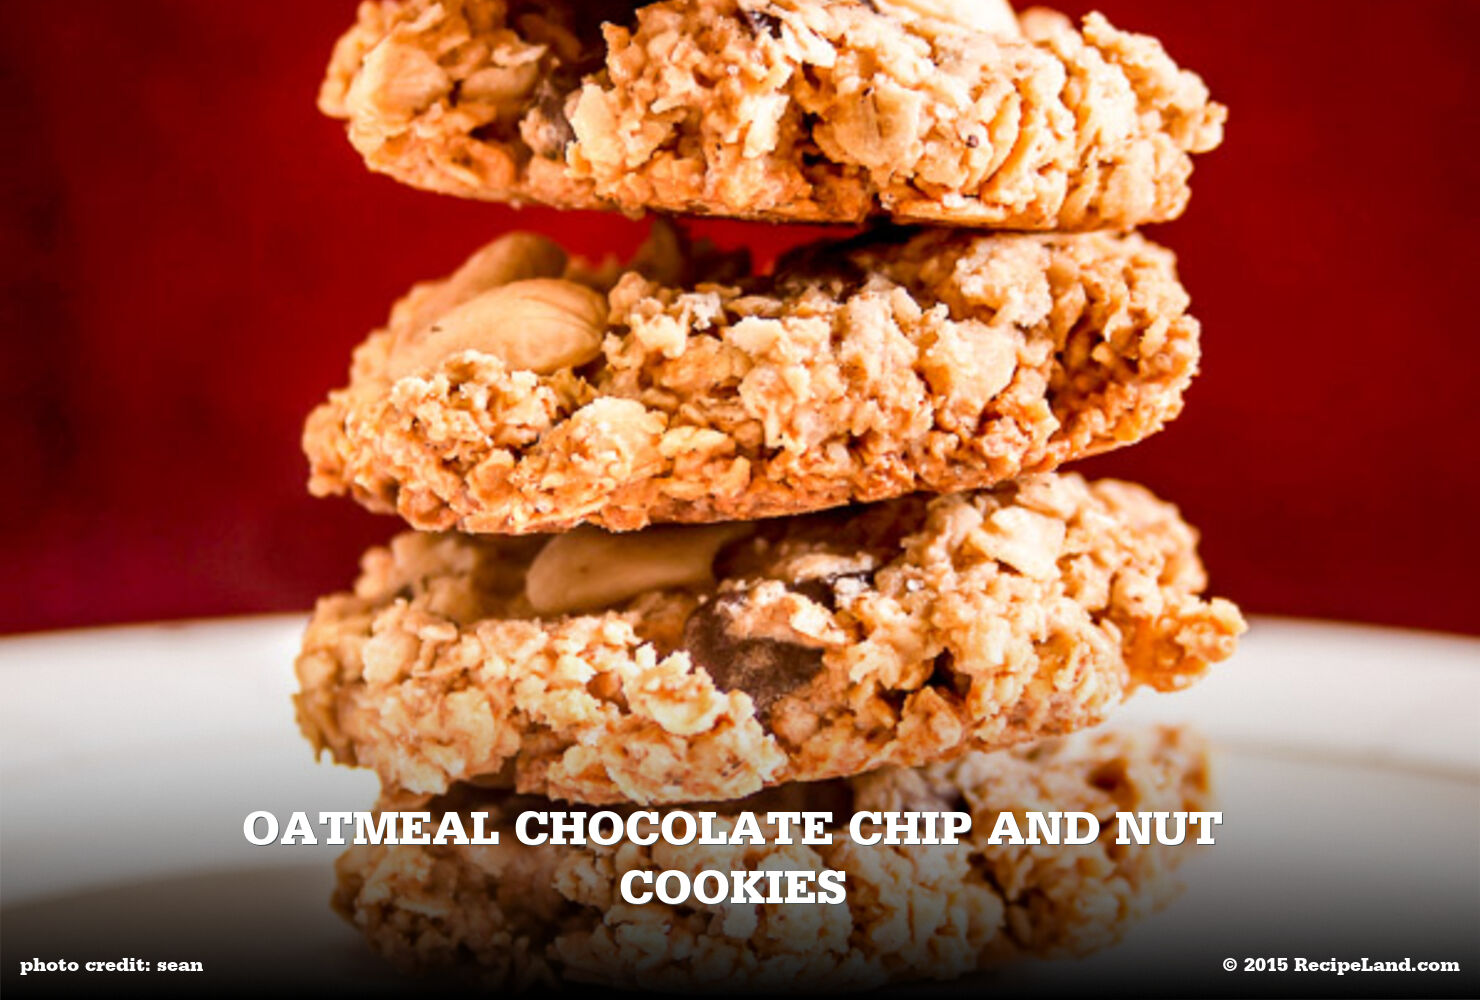 Oatmeal Chocolate Chip and Nut Cookies